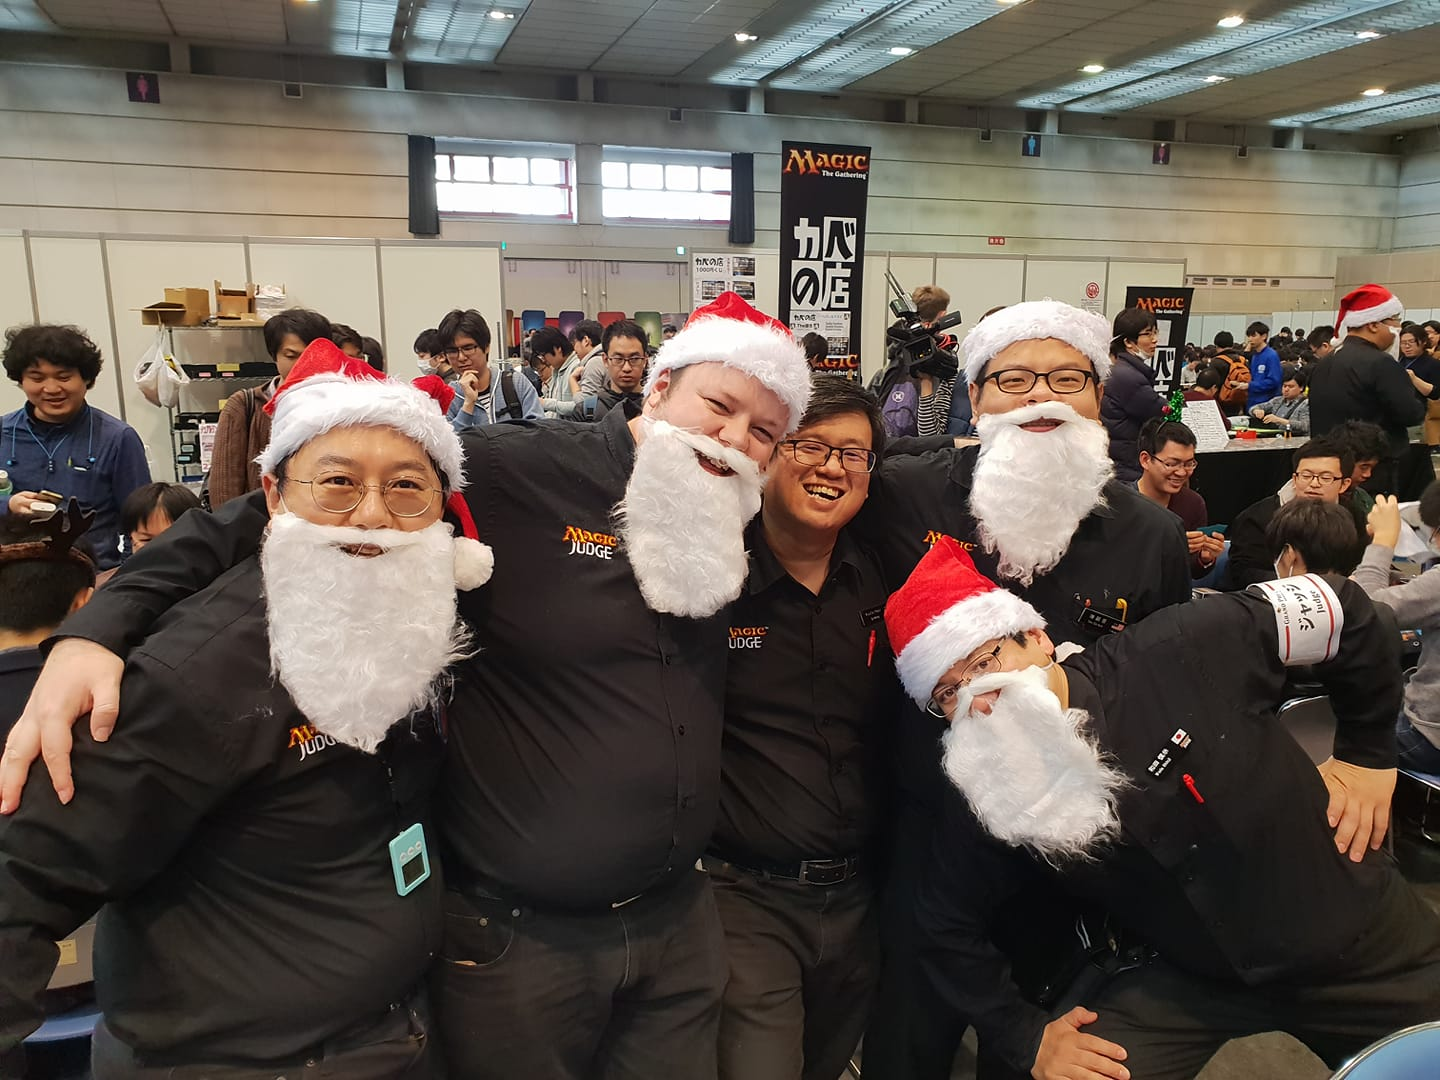 Grand Melee Chaos Tournament Pack Anaconda Draft at GP Shizuoka 2018 - Judges in Santa beards and hats rocking out their December event